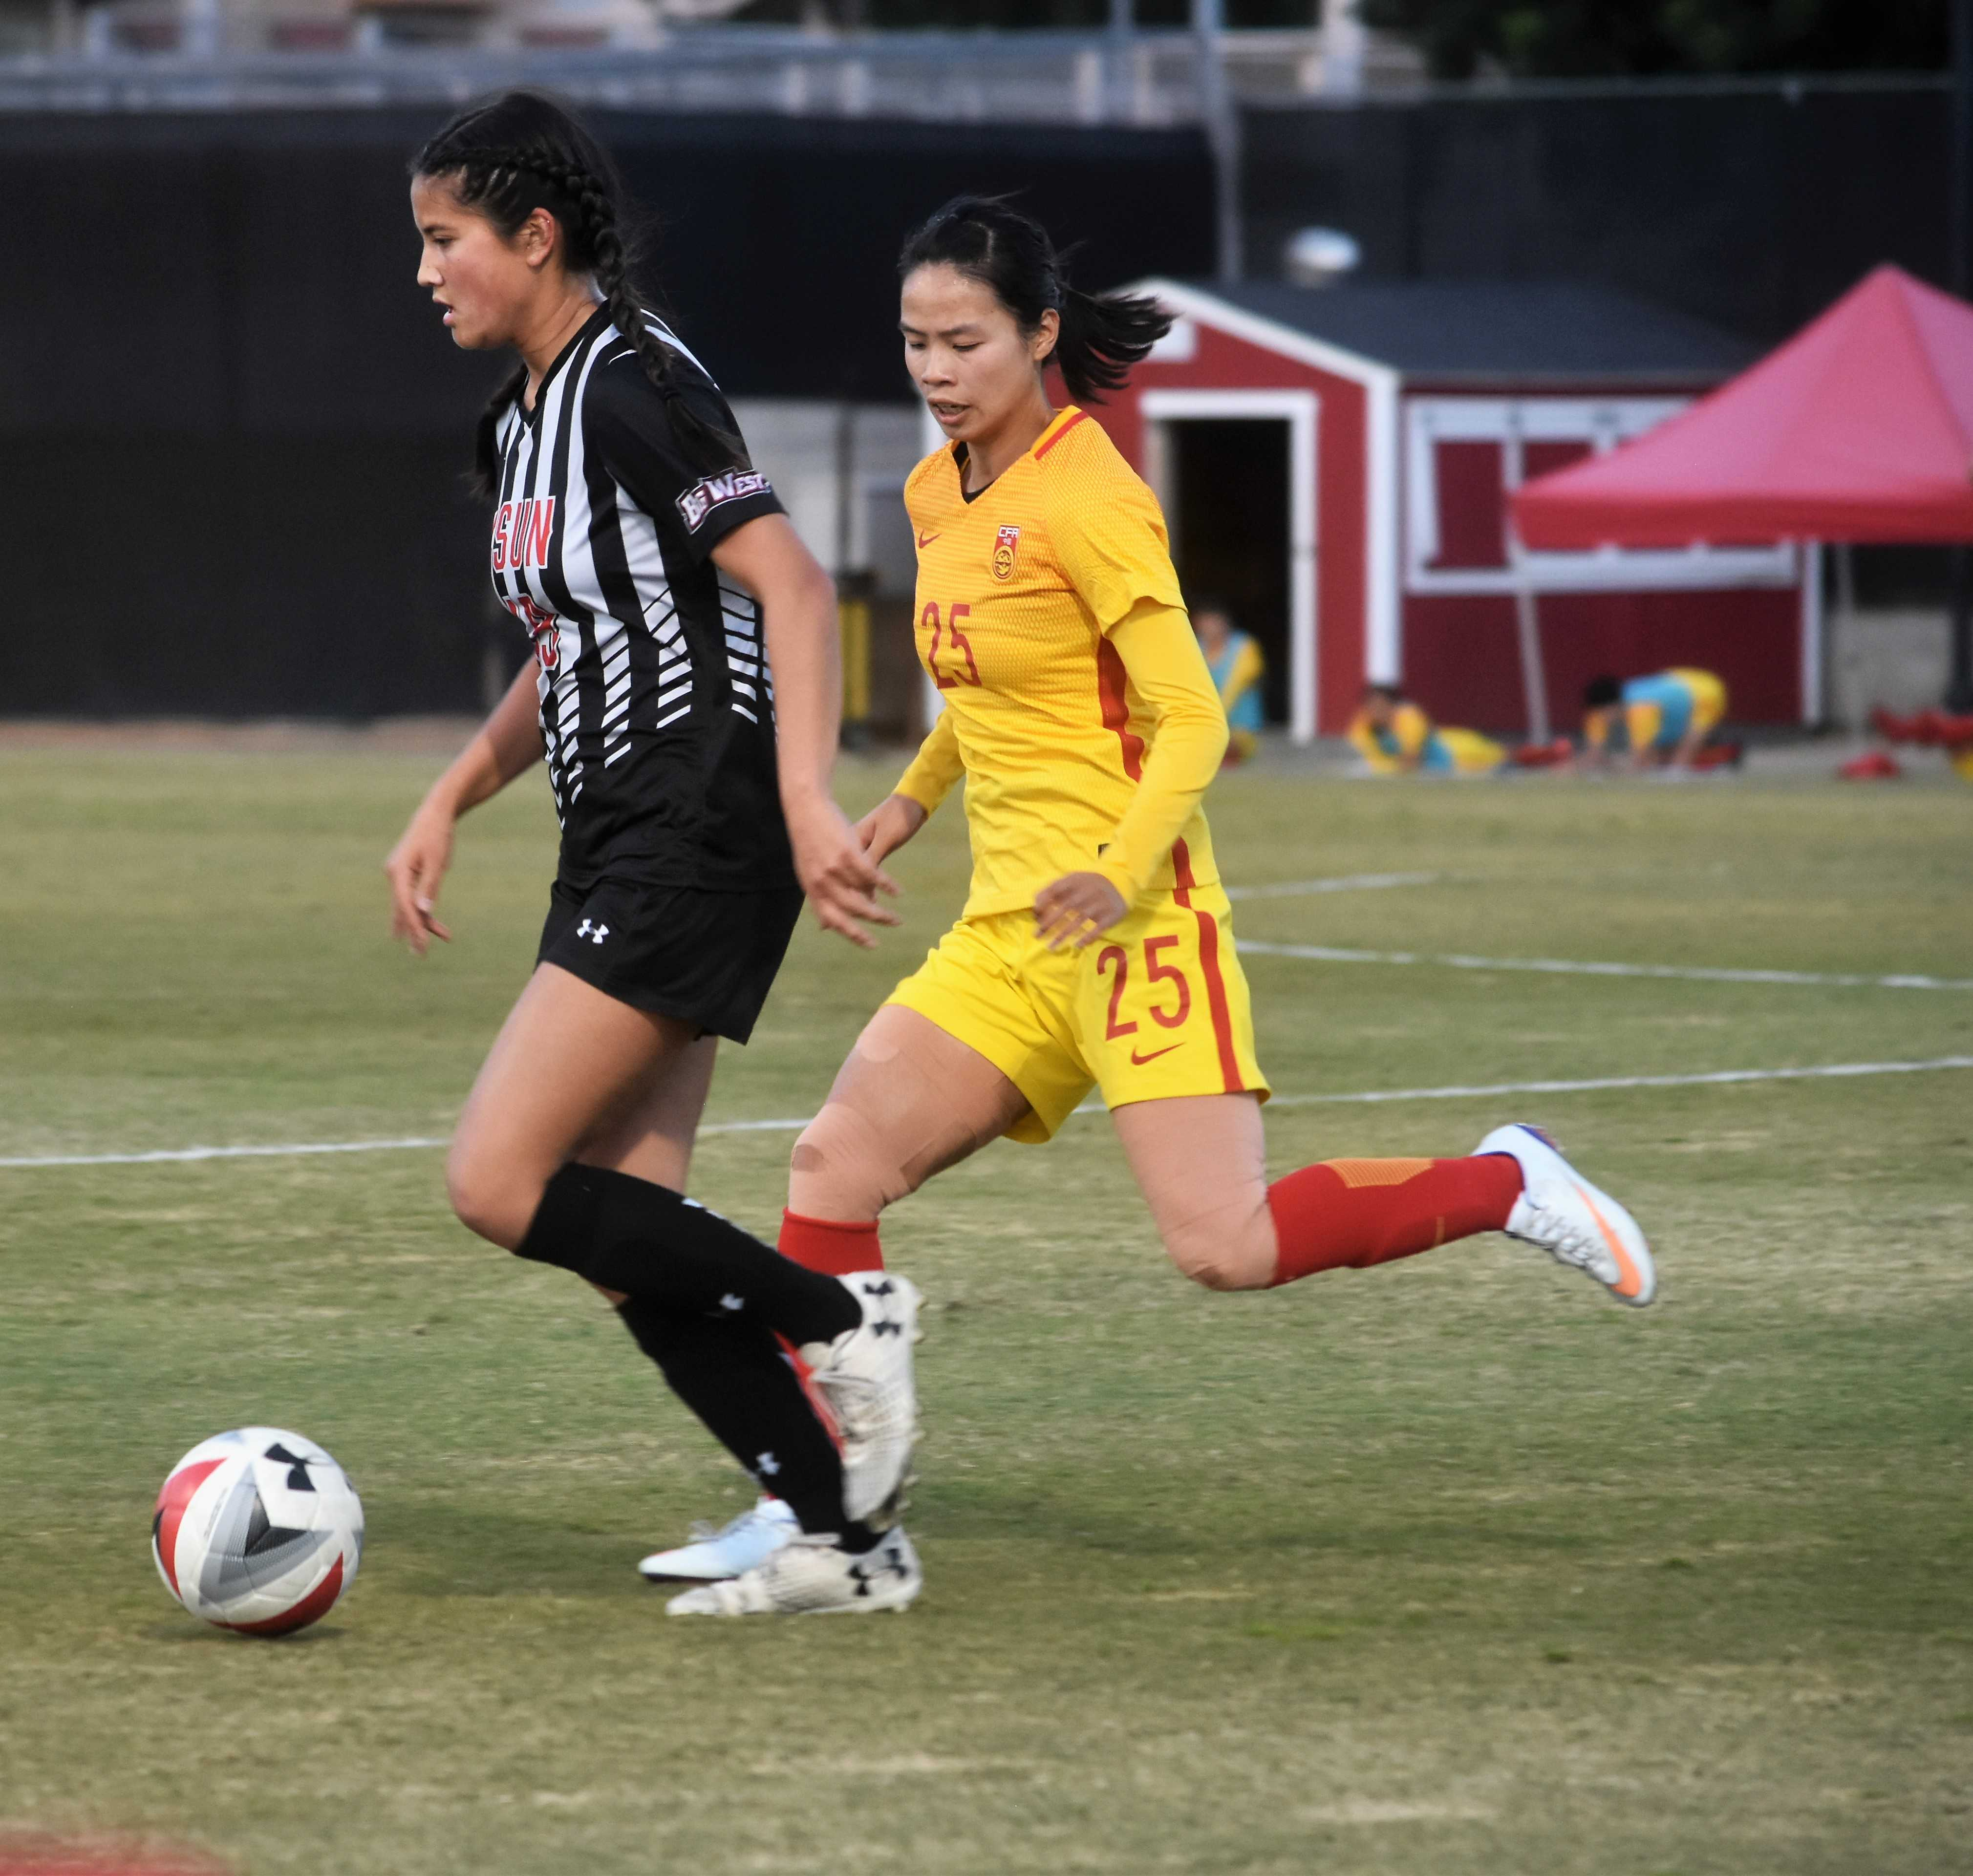 2017 Big West All-Freshman selection Amy Aquino is chased down by a Chinese midfielder. Aquino scored two goals and had one assist in 2017. Photo credit: Tamara Shapiro